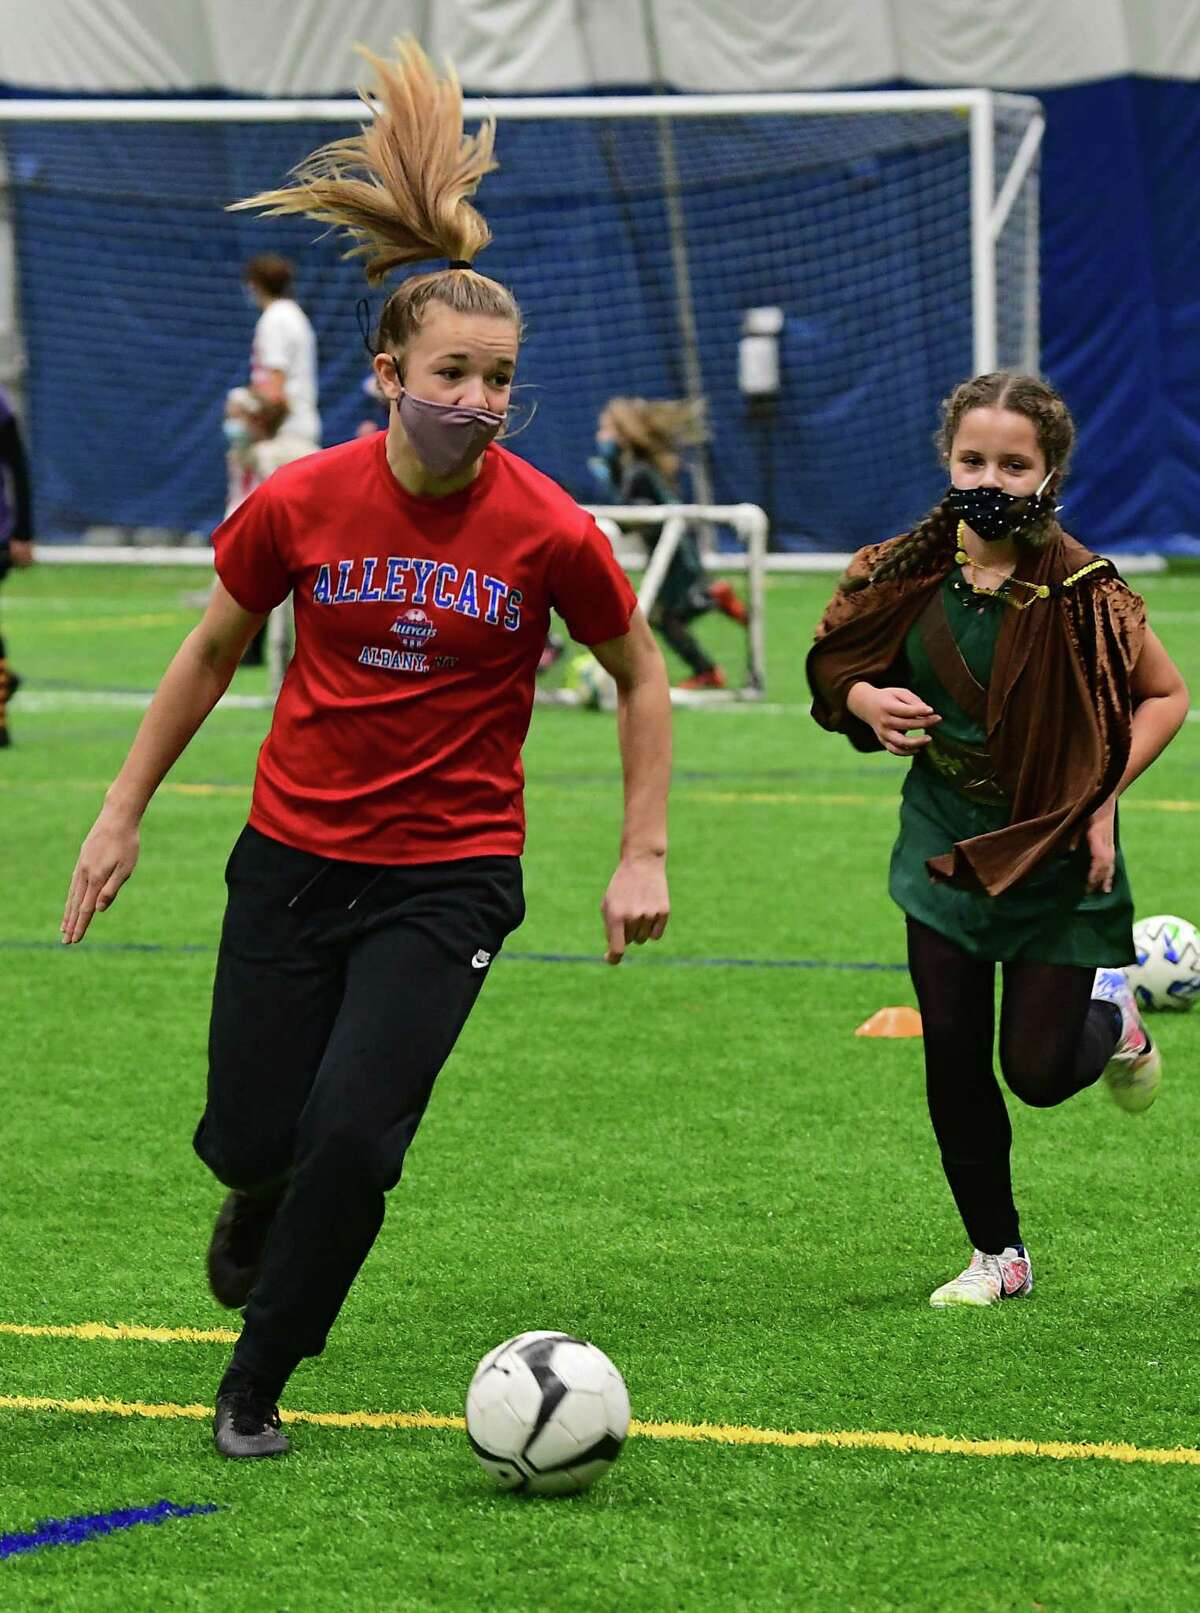 Claire Hutton, left, runs a drill as she coaches a girl's soccer team at Afrim's Sports Park on Thursday, Oct. 29, 2020 in Colonie, N.Y. Hutton is on the Bethlehem soccer team which is not playing this season. (Lori Van Buren/Times Union)